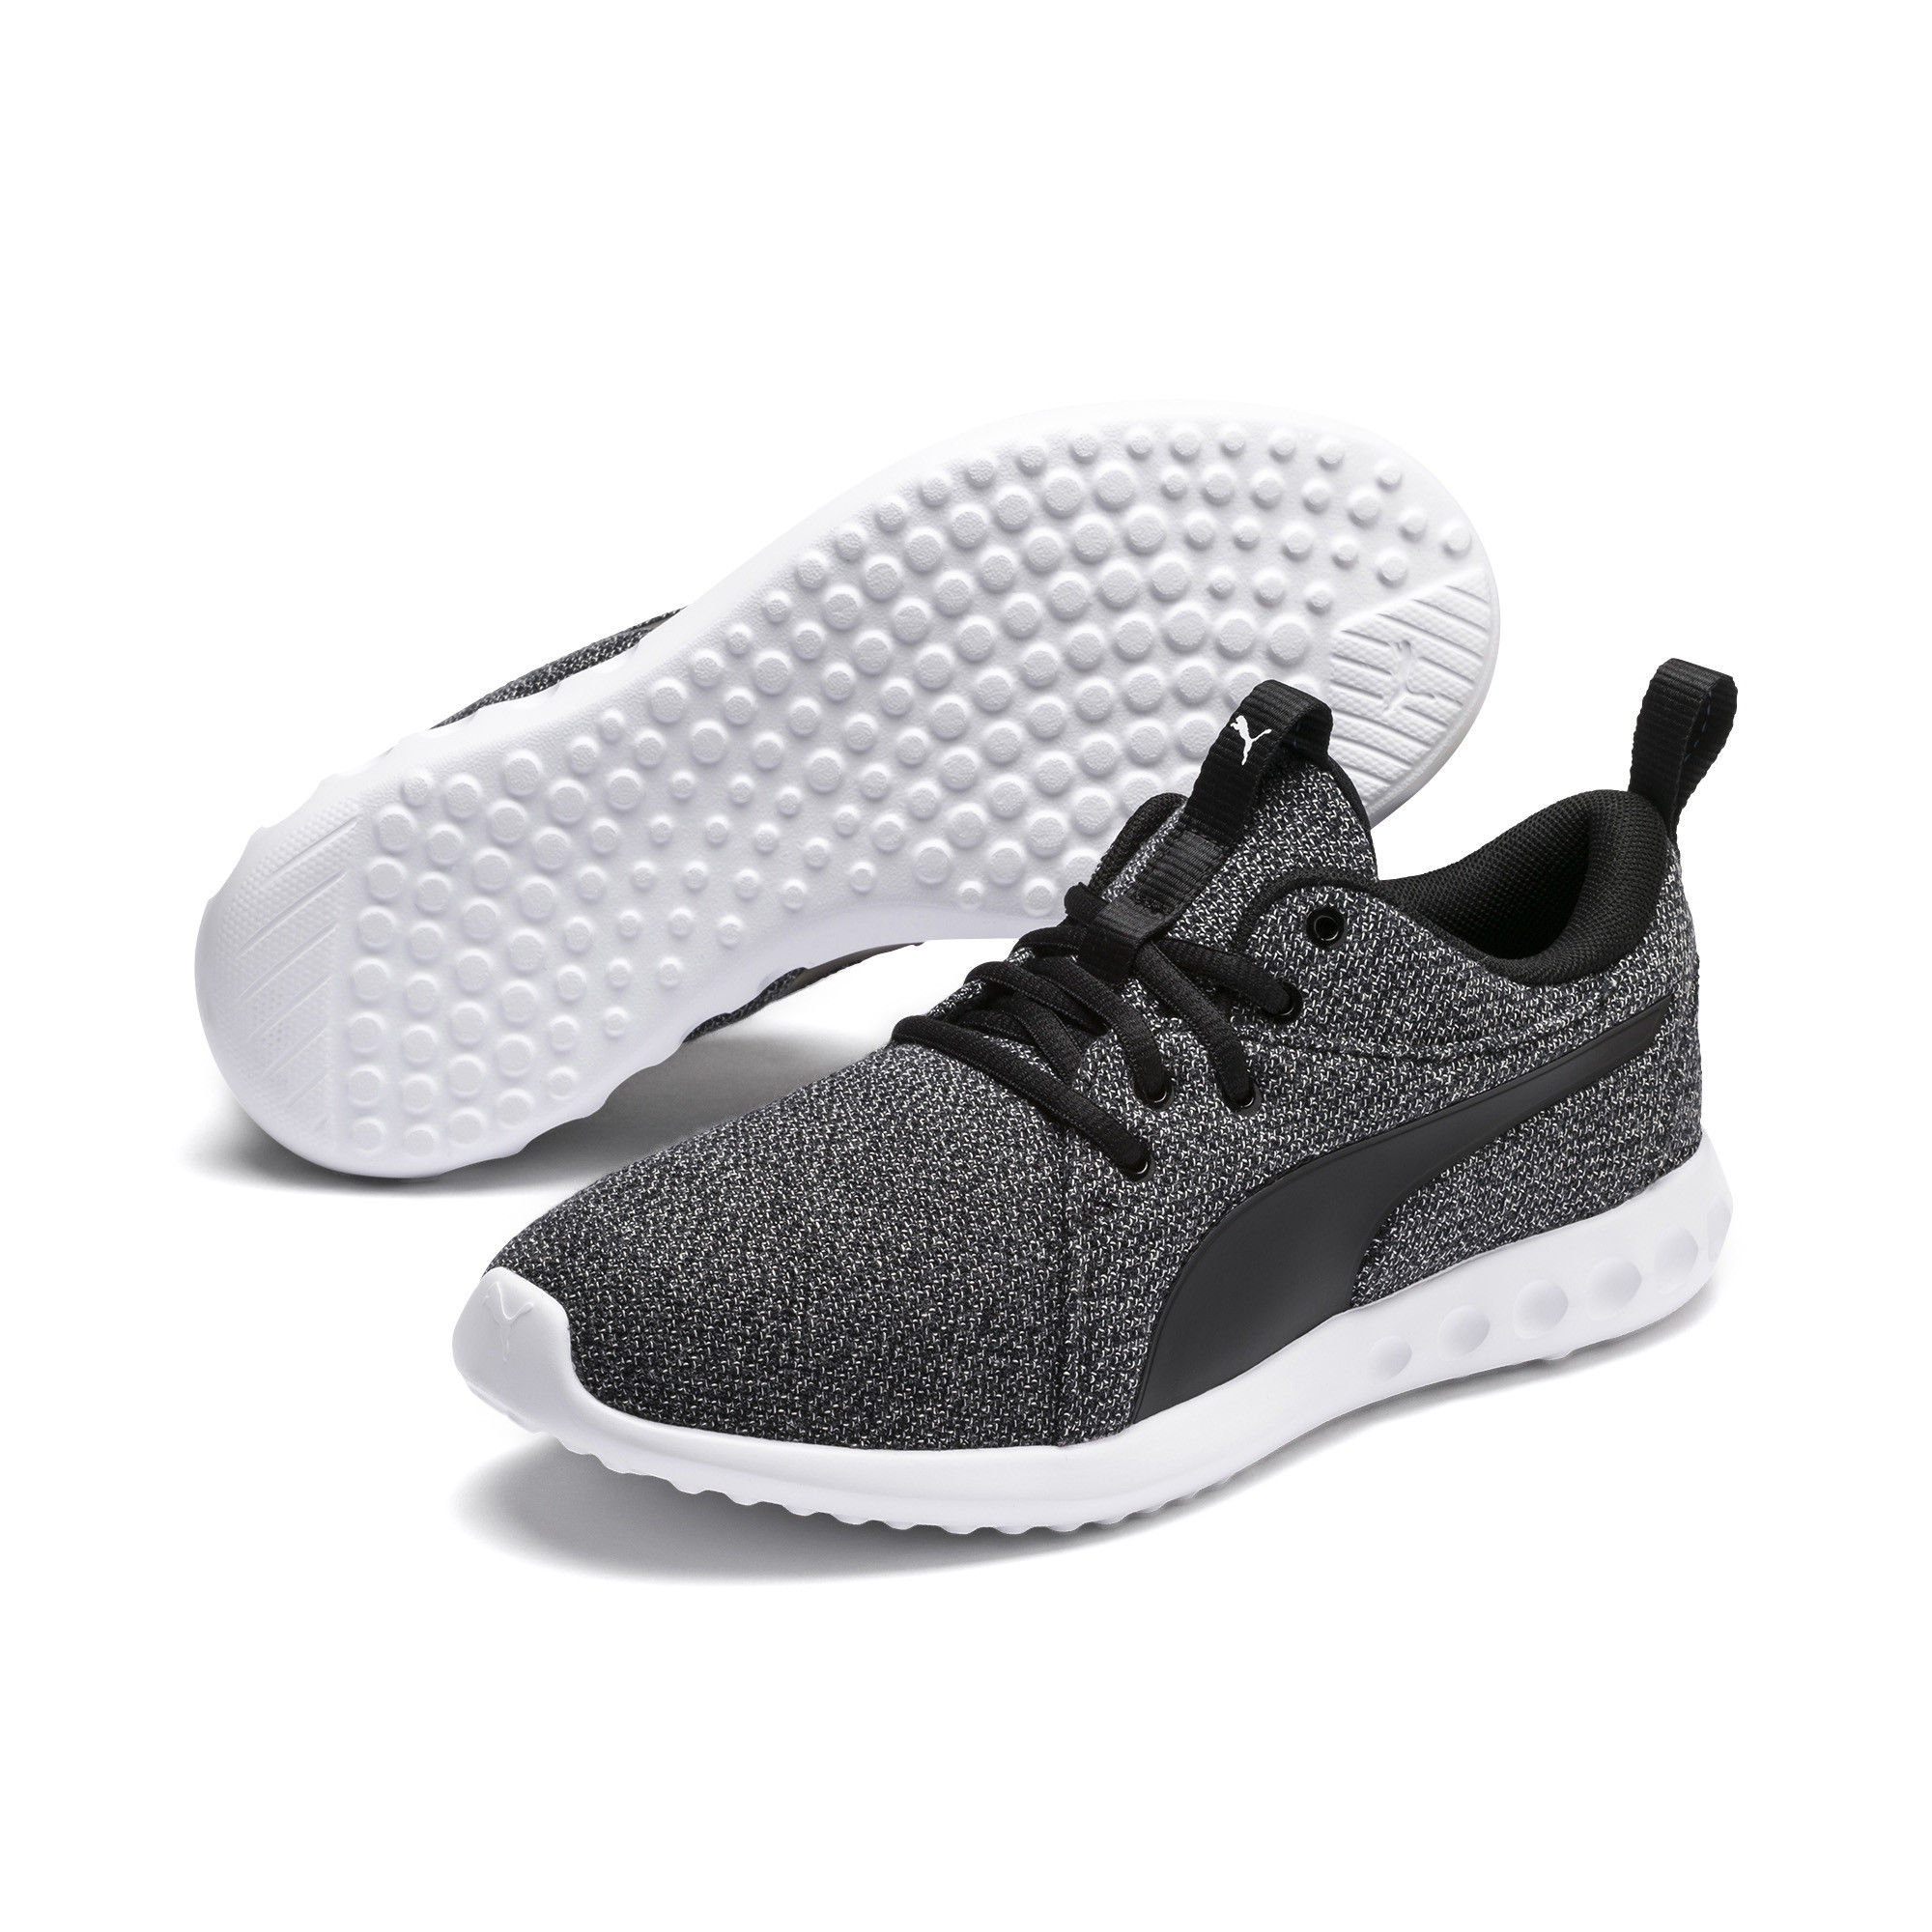 PUMA-Women-039-s-Carson-2-Knit-Running-Shoes thumbnail 1